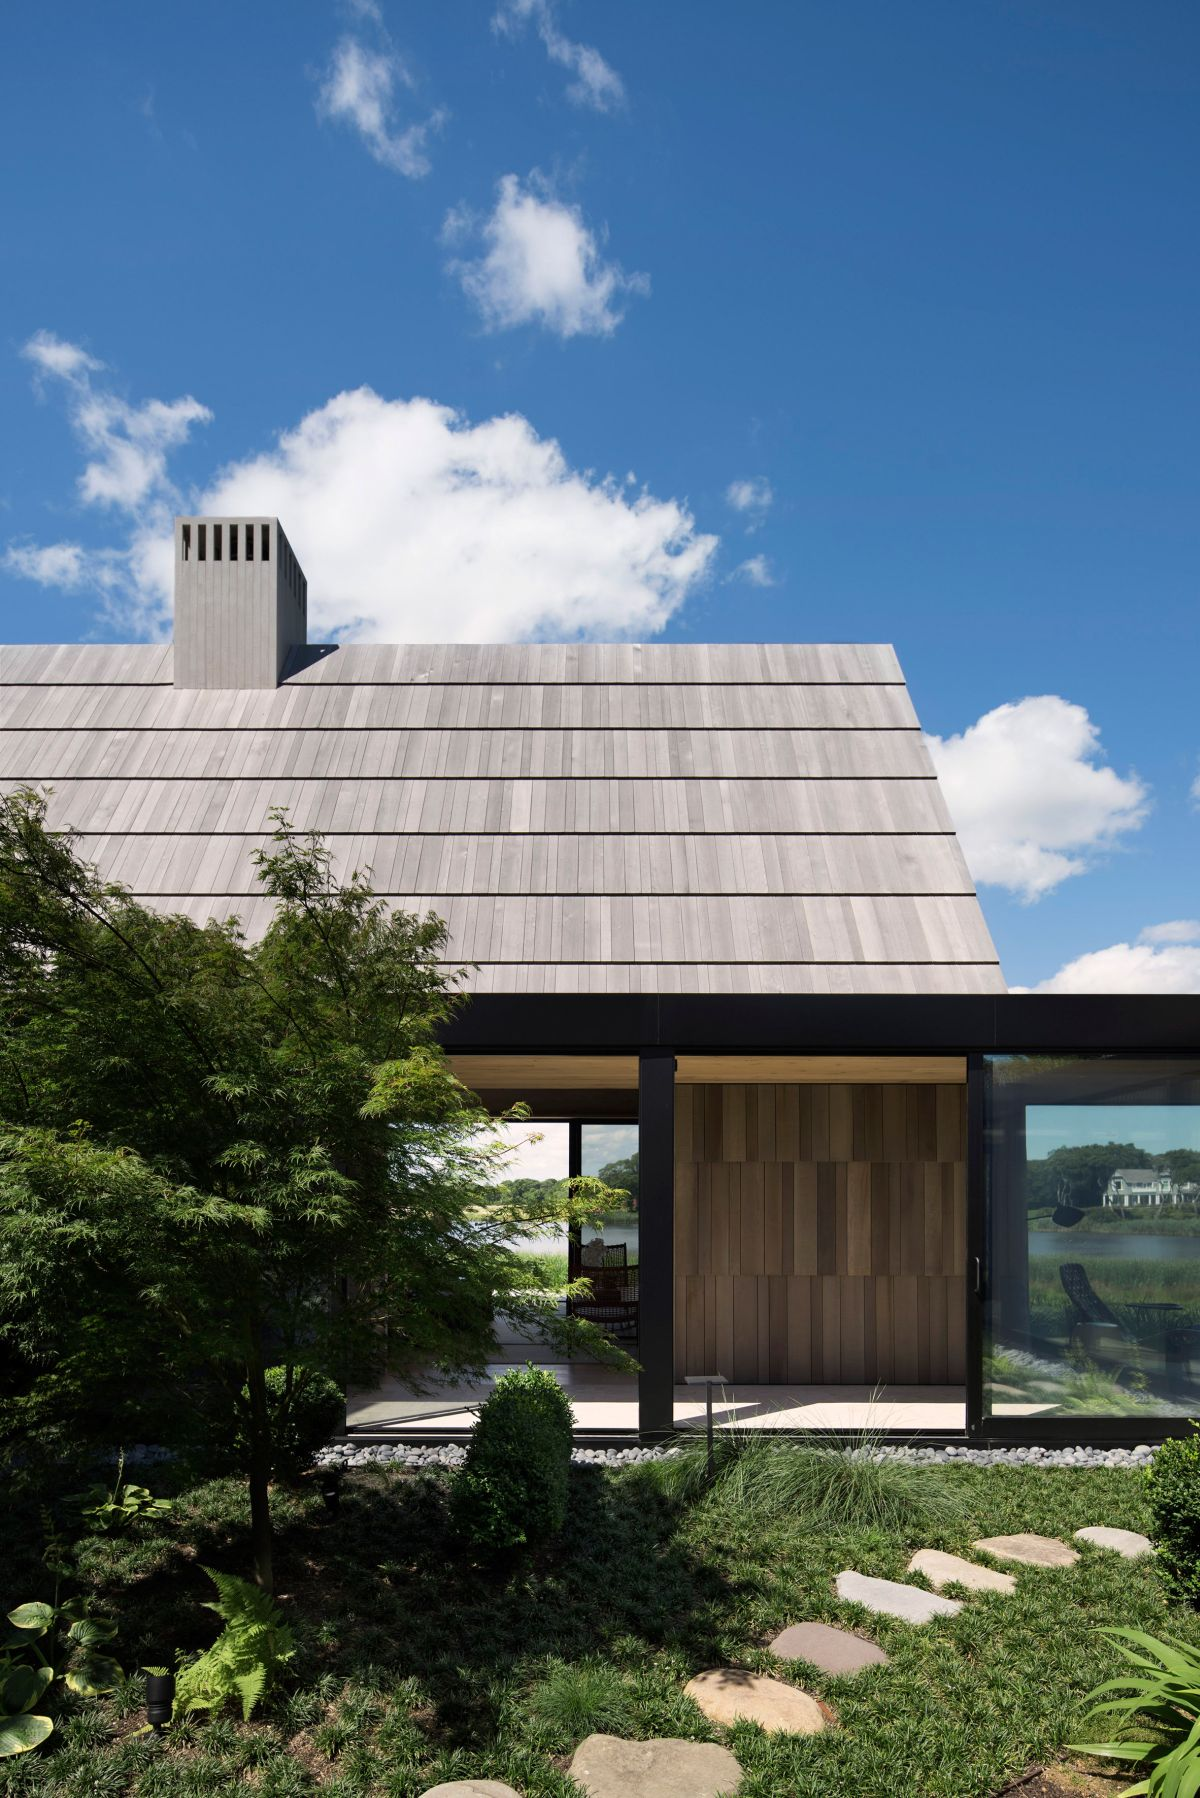 1561104968 324 swoon worthy homes in hamptons that work with the natural landscape - Swoon-Worthy Homes in Hamptons That Work With the Natural Landscape